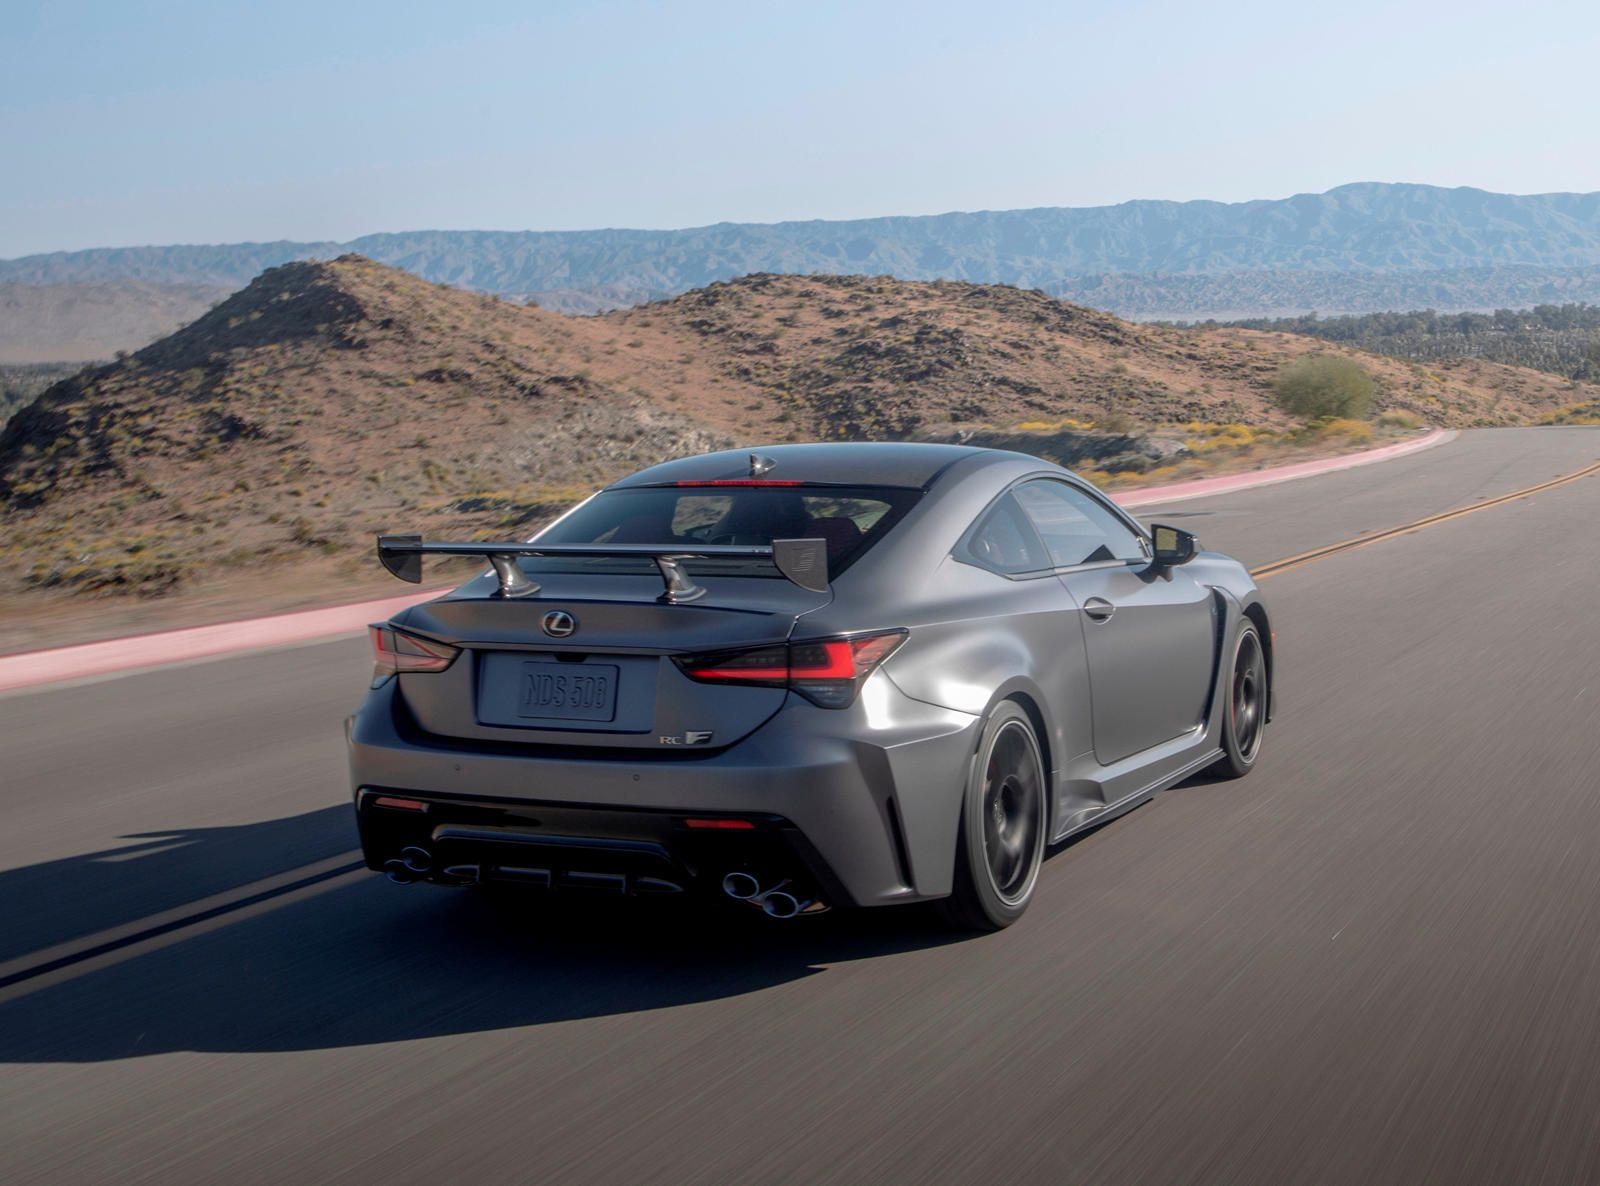 Lexus Lc F Will Be As Powerful As Ferrari 488 Gtb It Would Finally Add Real Brawn To Lexus Coupe Beauty In 2020 Lexus Lc Lexus Lexus Coupe